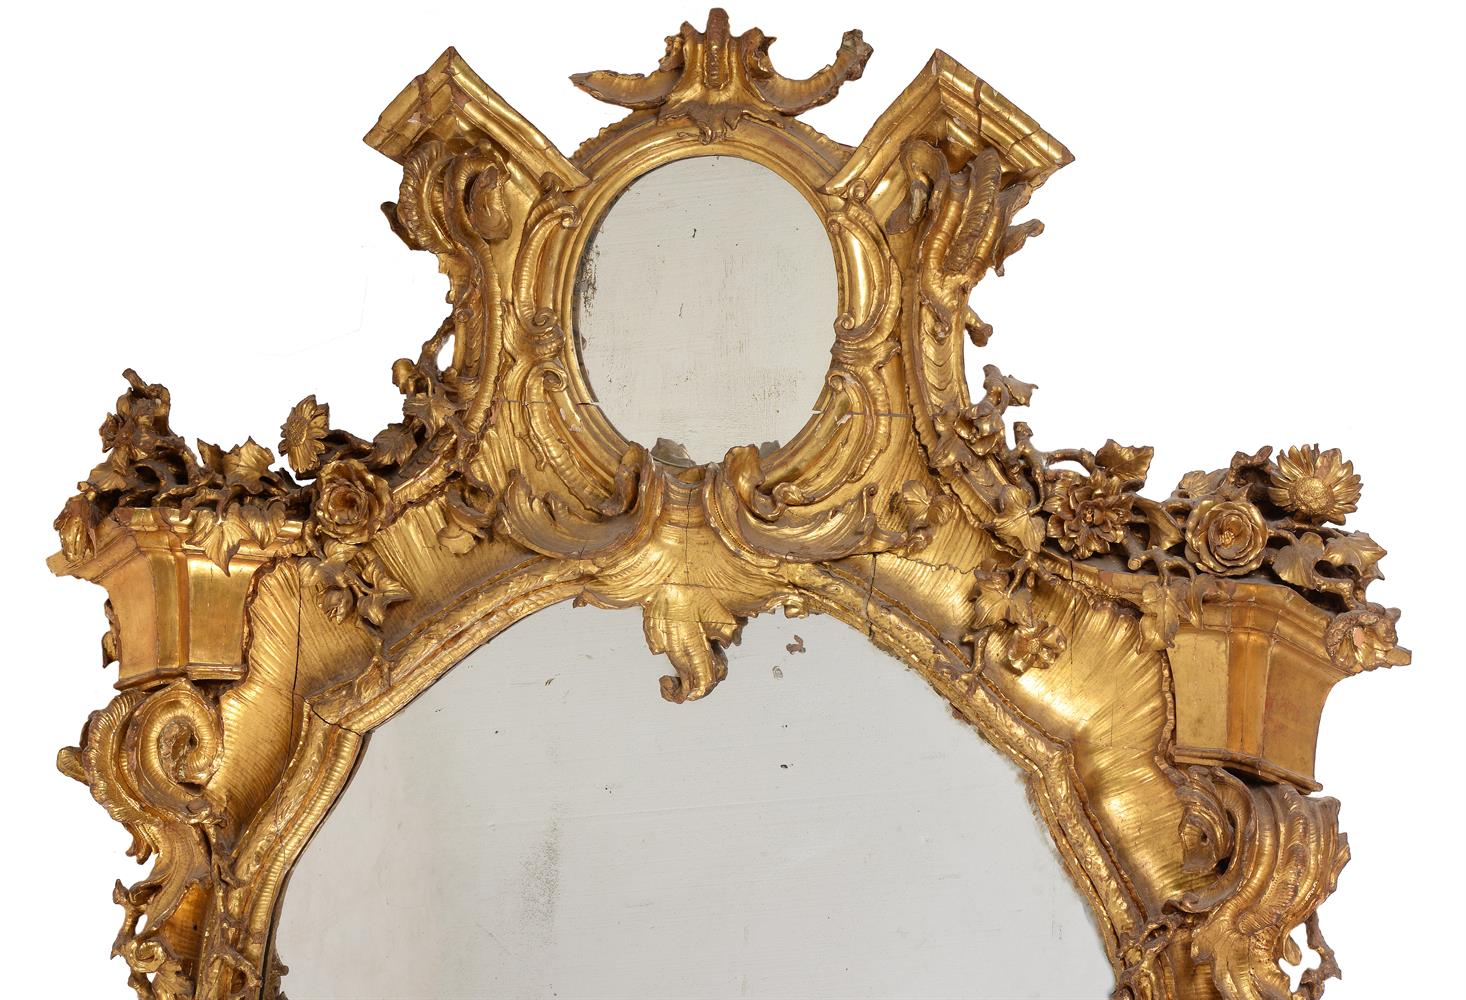 A CONTINENTAL CARVED GILTWOOD WALL MIRROR, 19TH CENTURY - Image 2 of 7